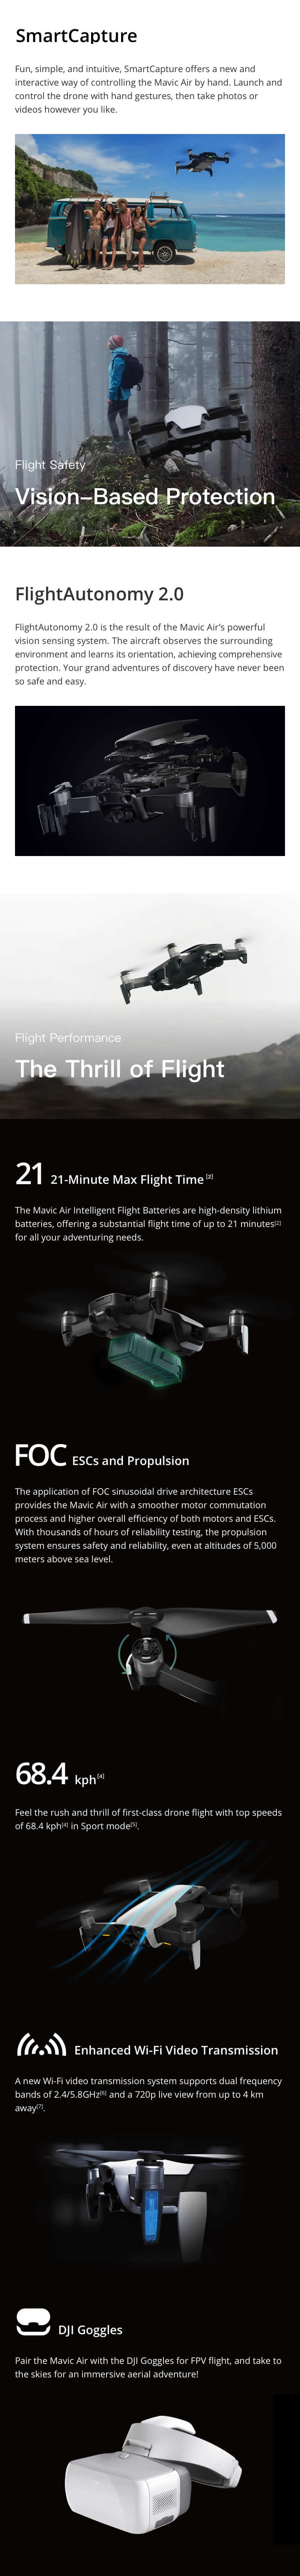 mavic-air-description-3